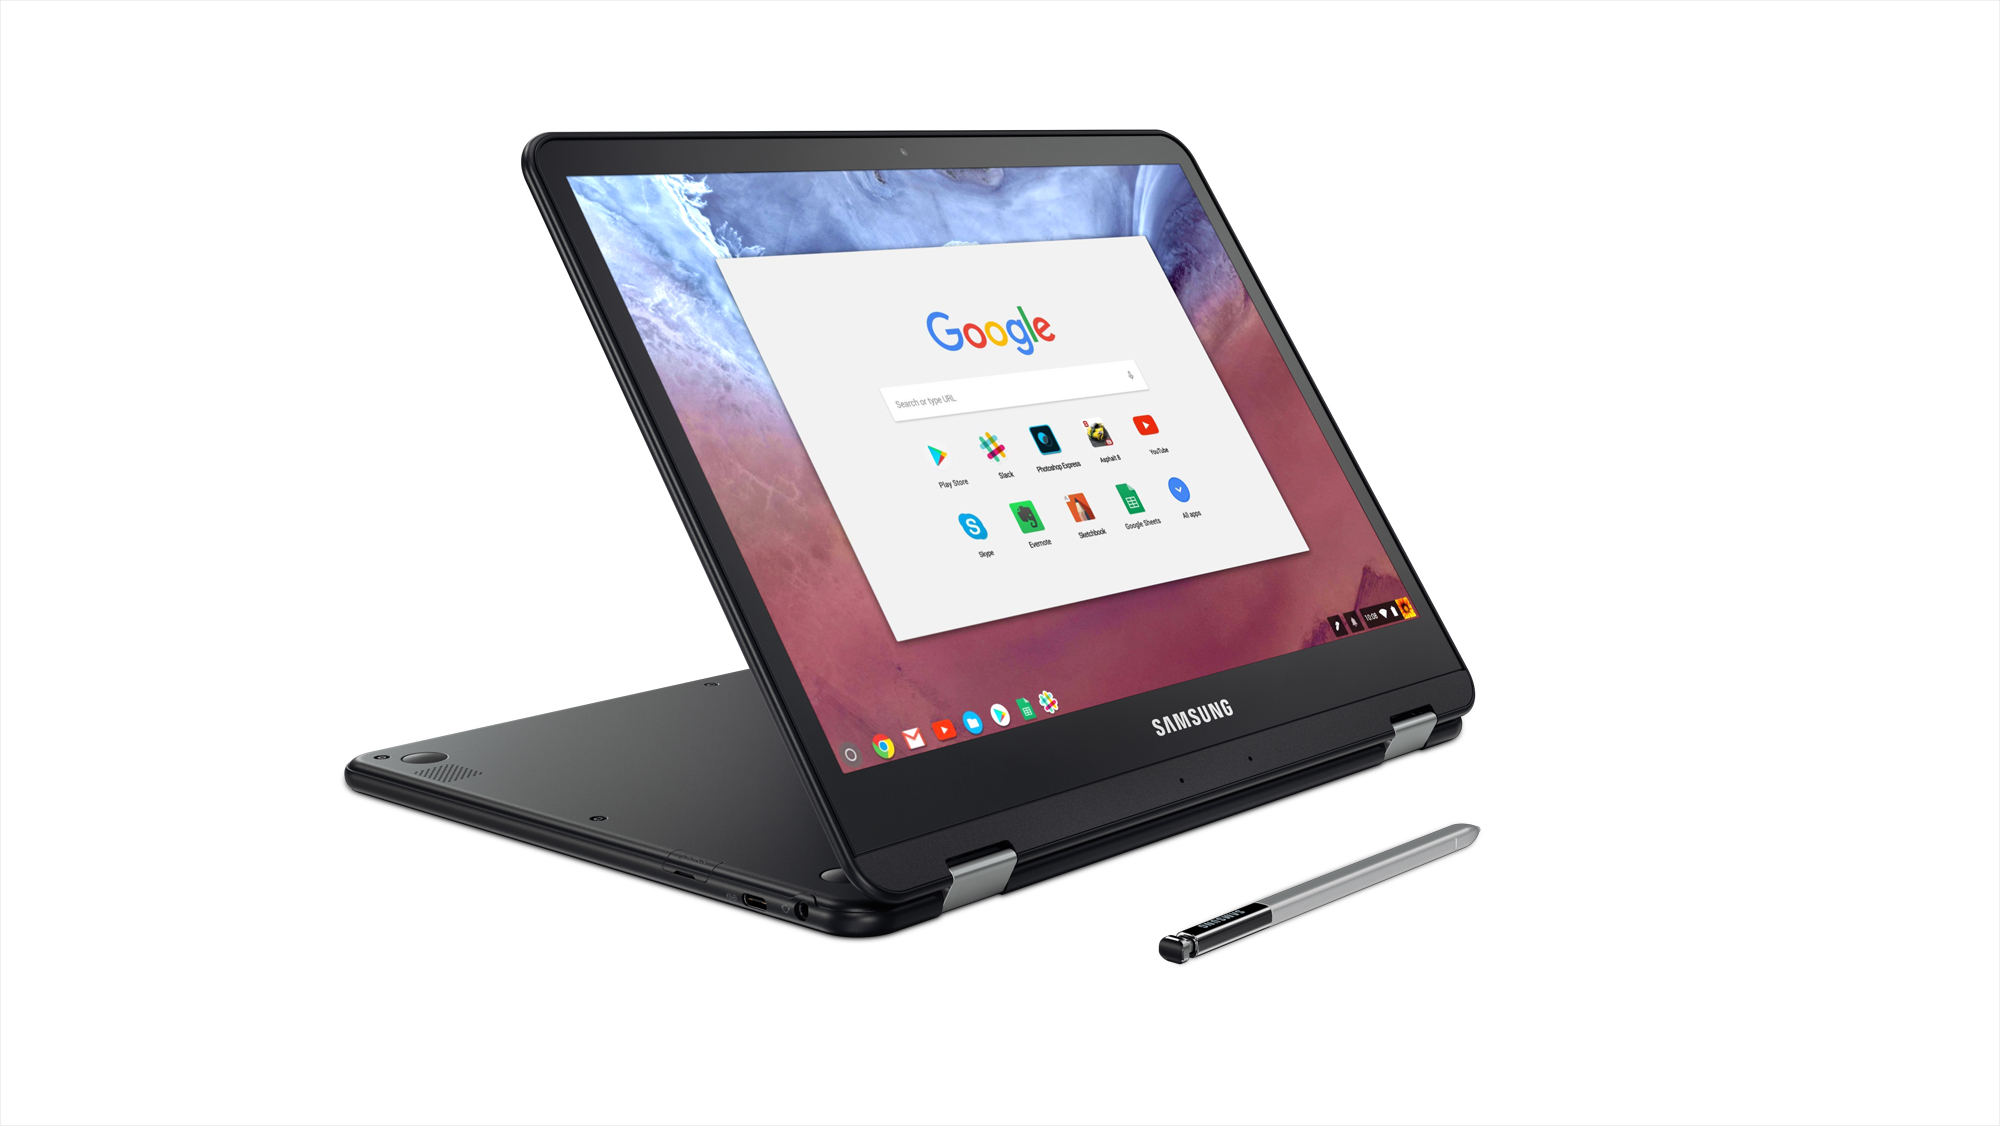 03_chromebook_hero_shot_stand_mode_front_facing_right_screen_a